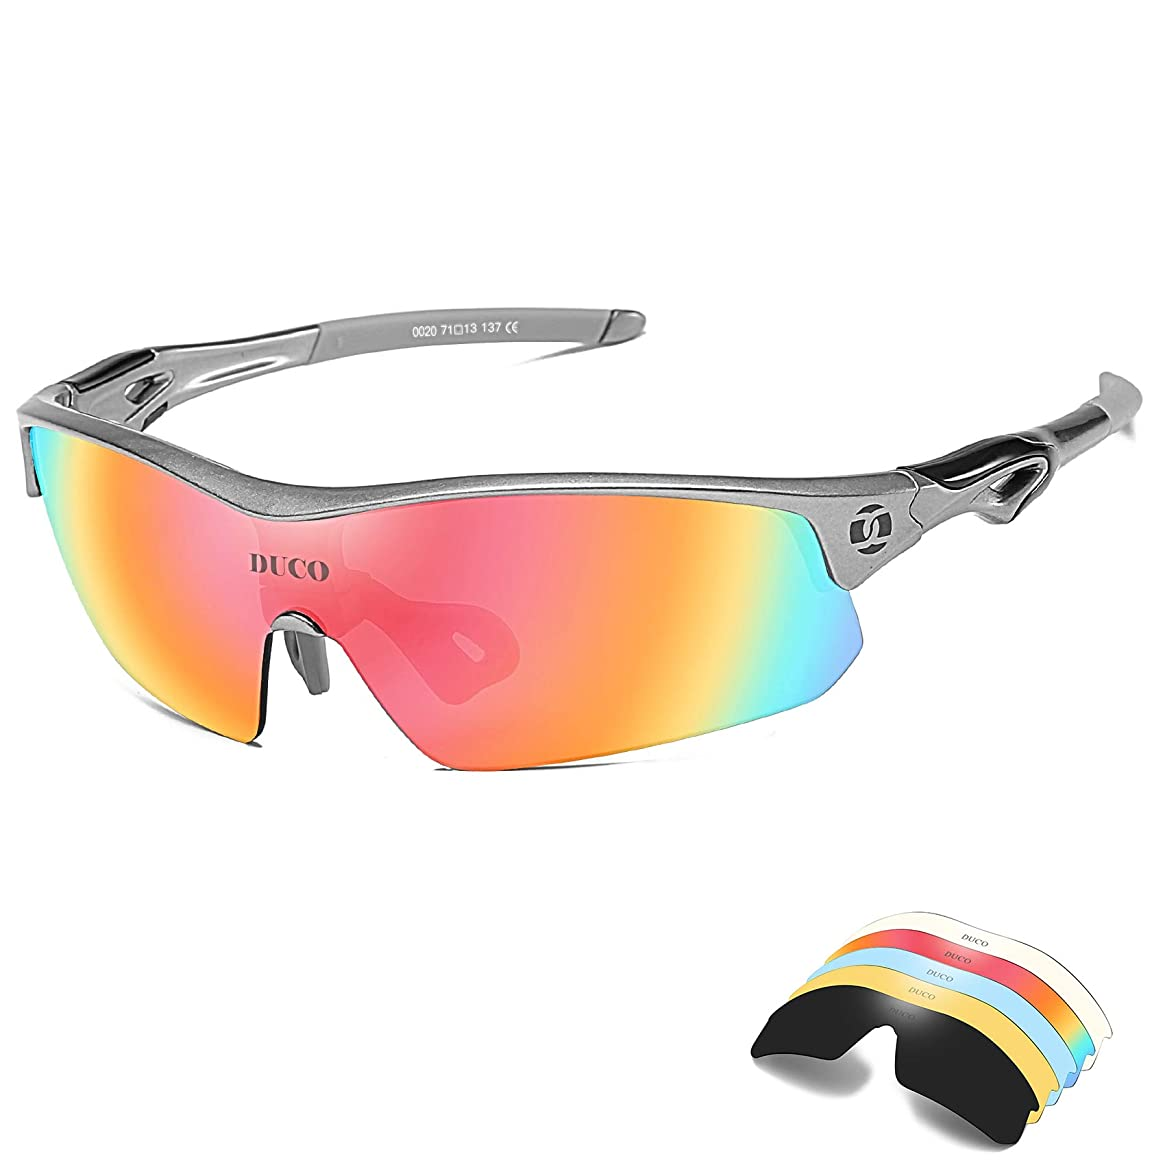 DUCO Polarized Sports Cycling Sunglasses for Men with 5 Interchangeable Lenes for Running Golf Fishing Hiking Baseball 0020